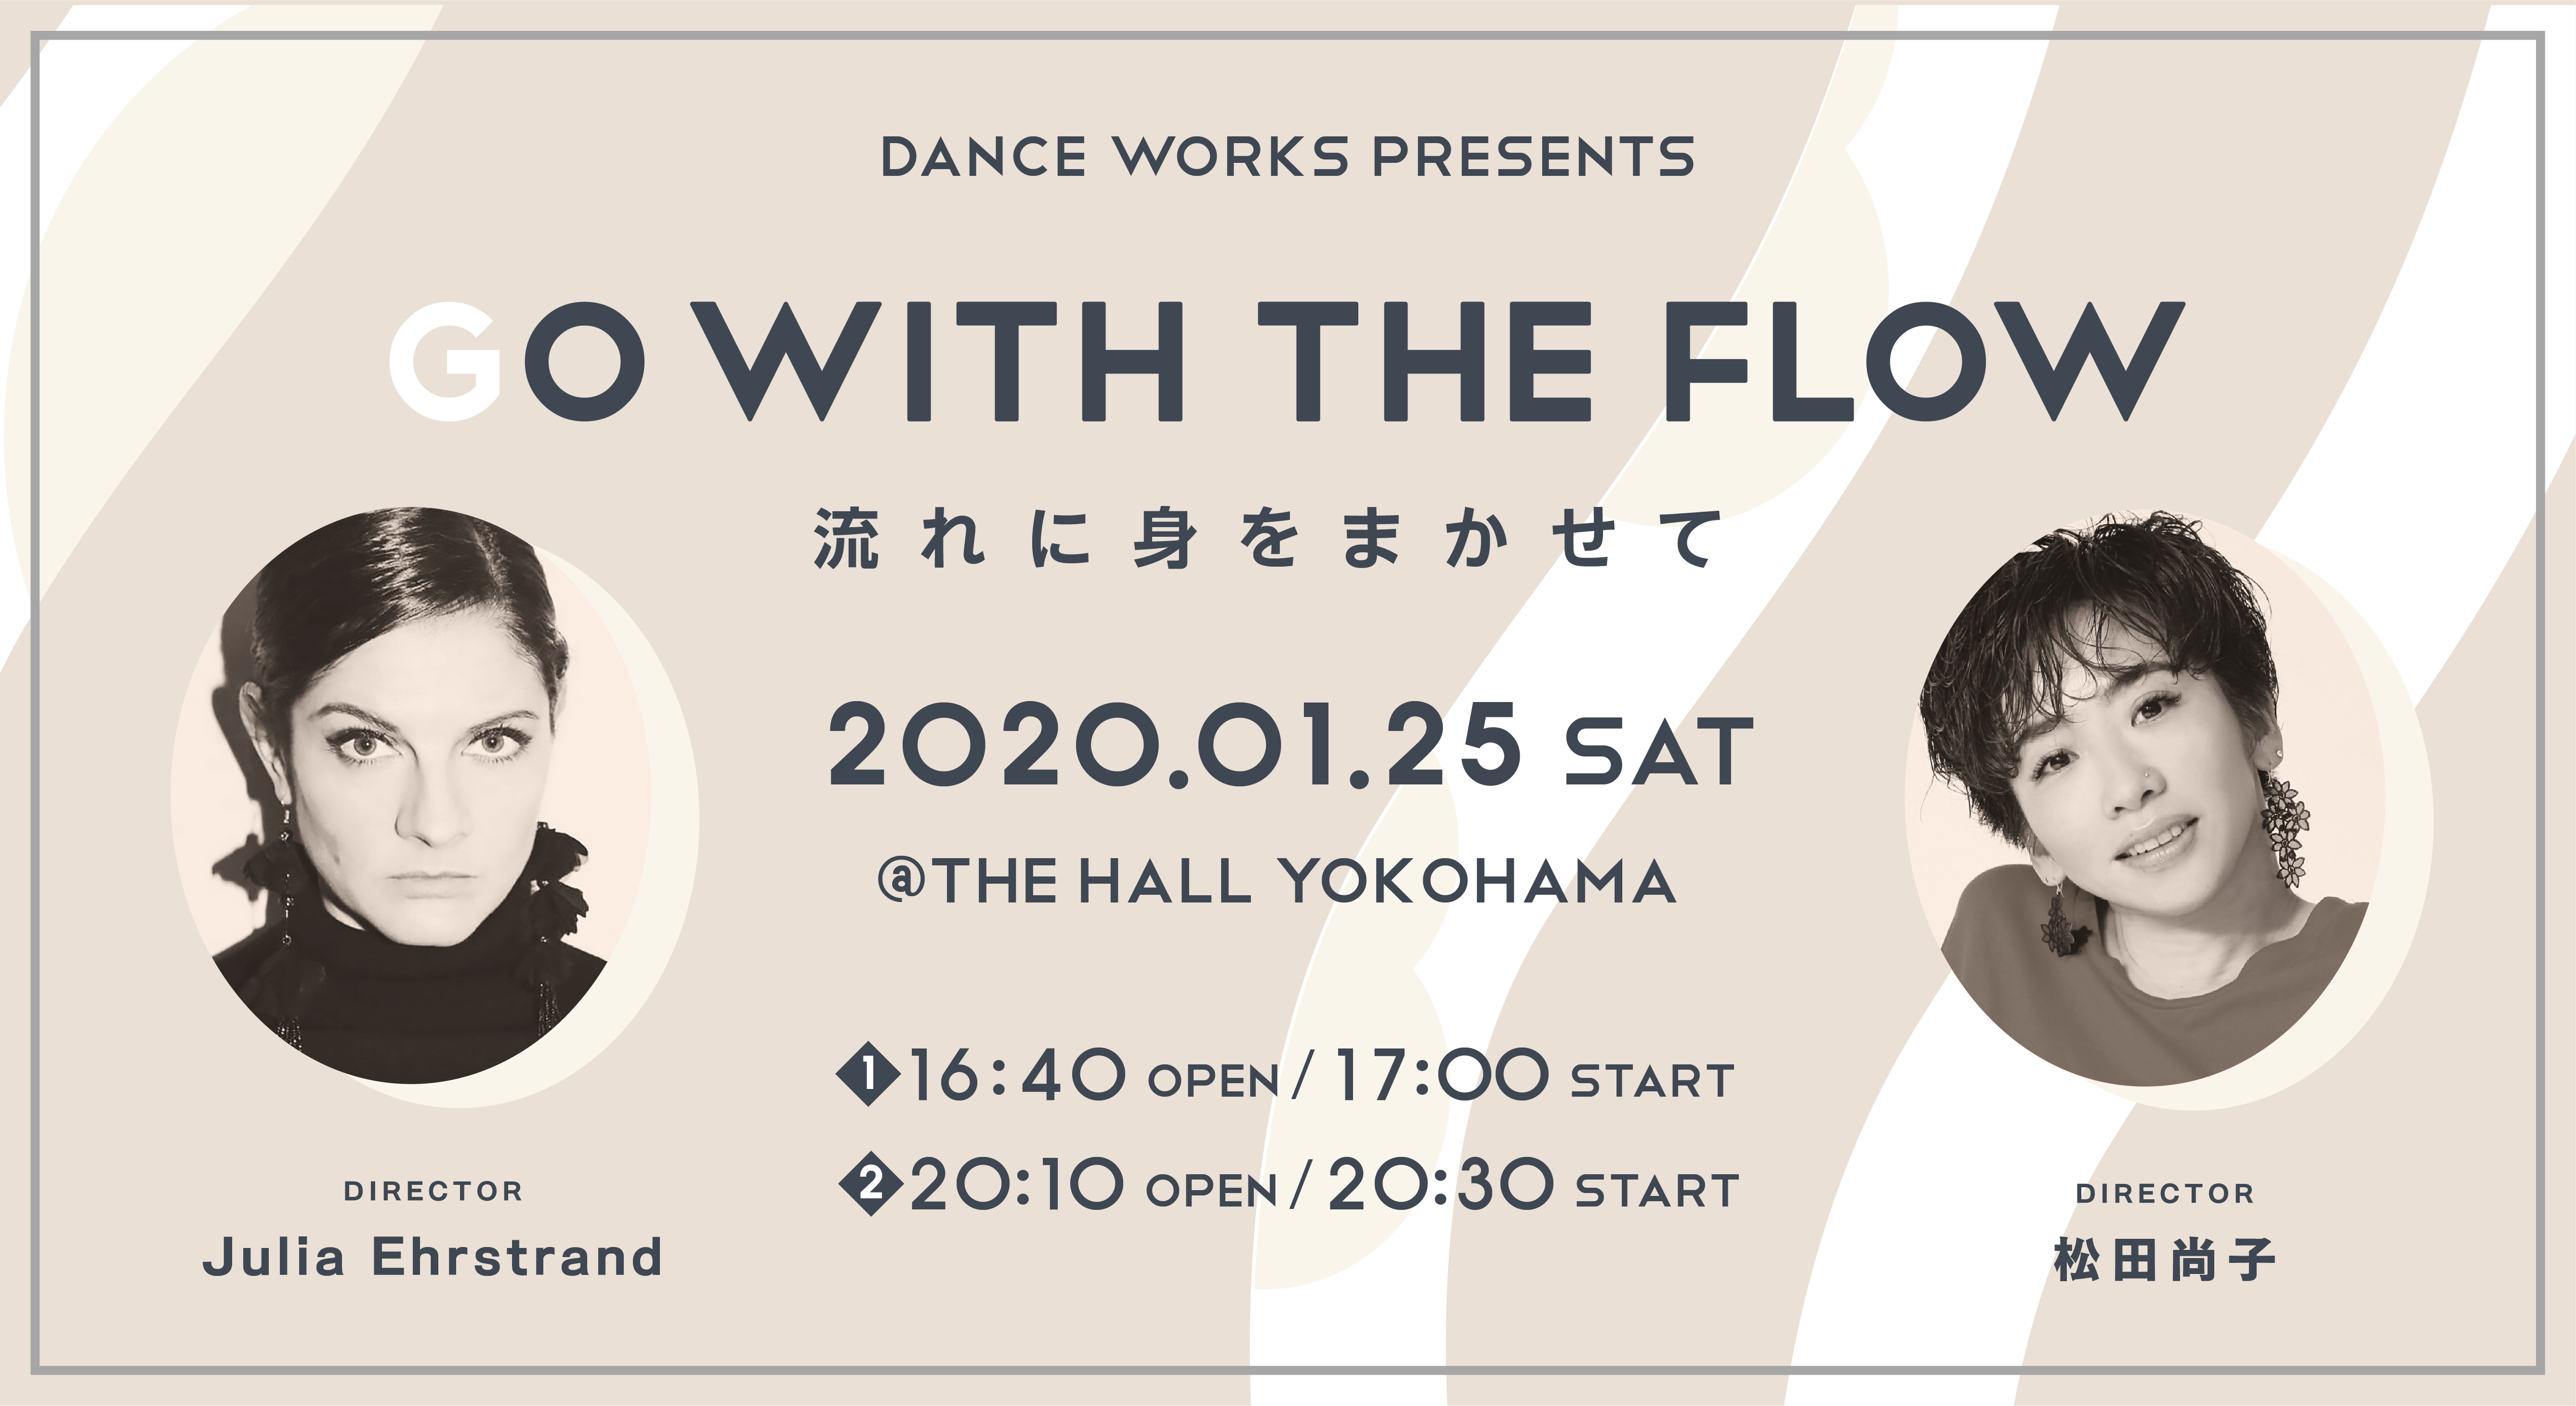 Go with the flow〜流れに身を任せて〜